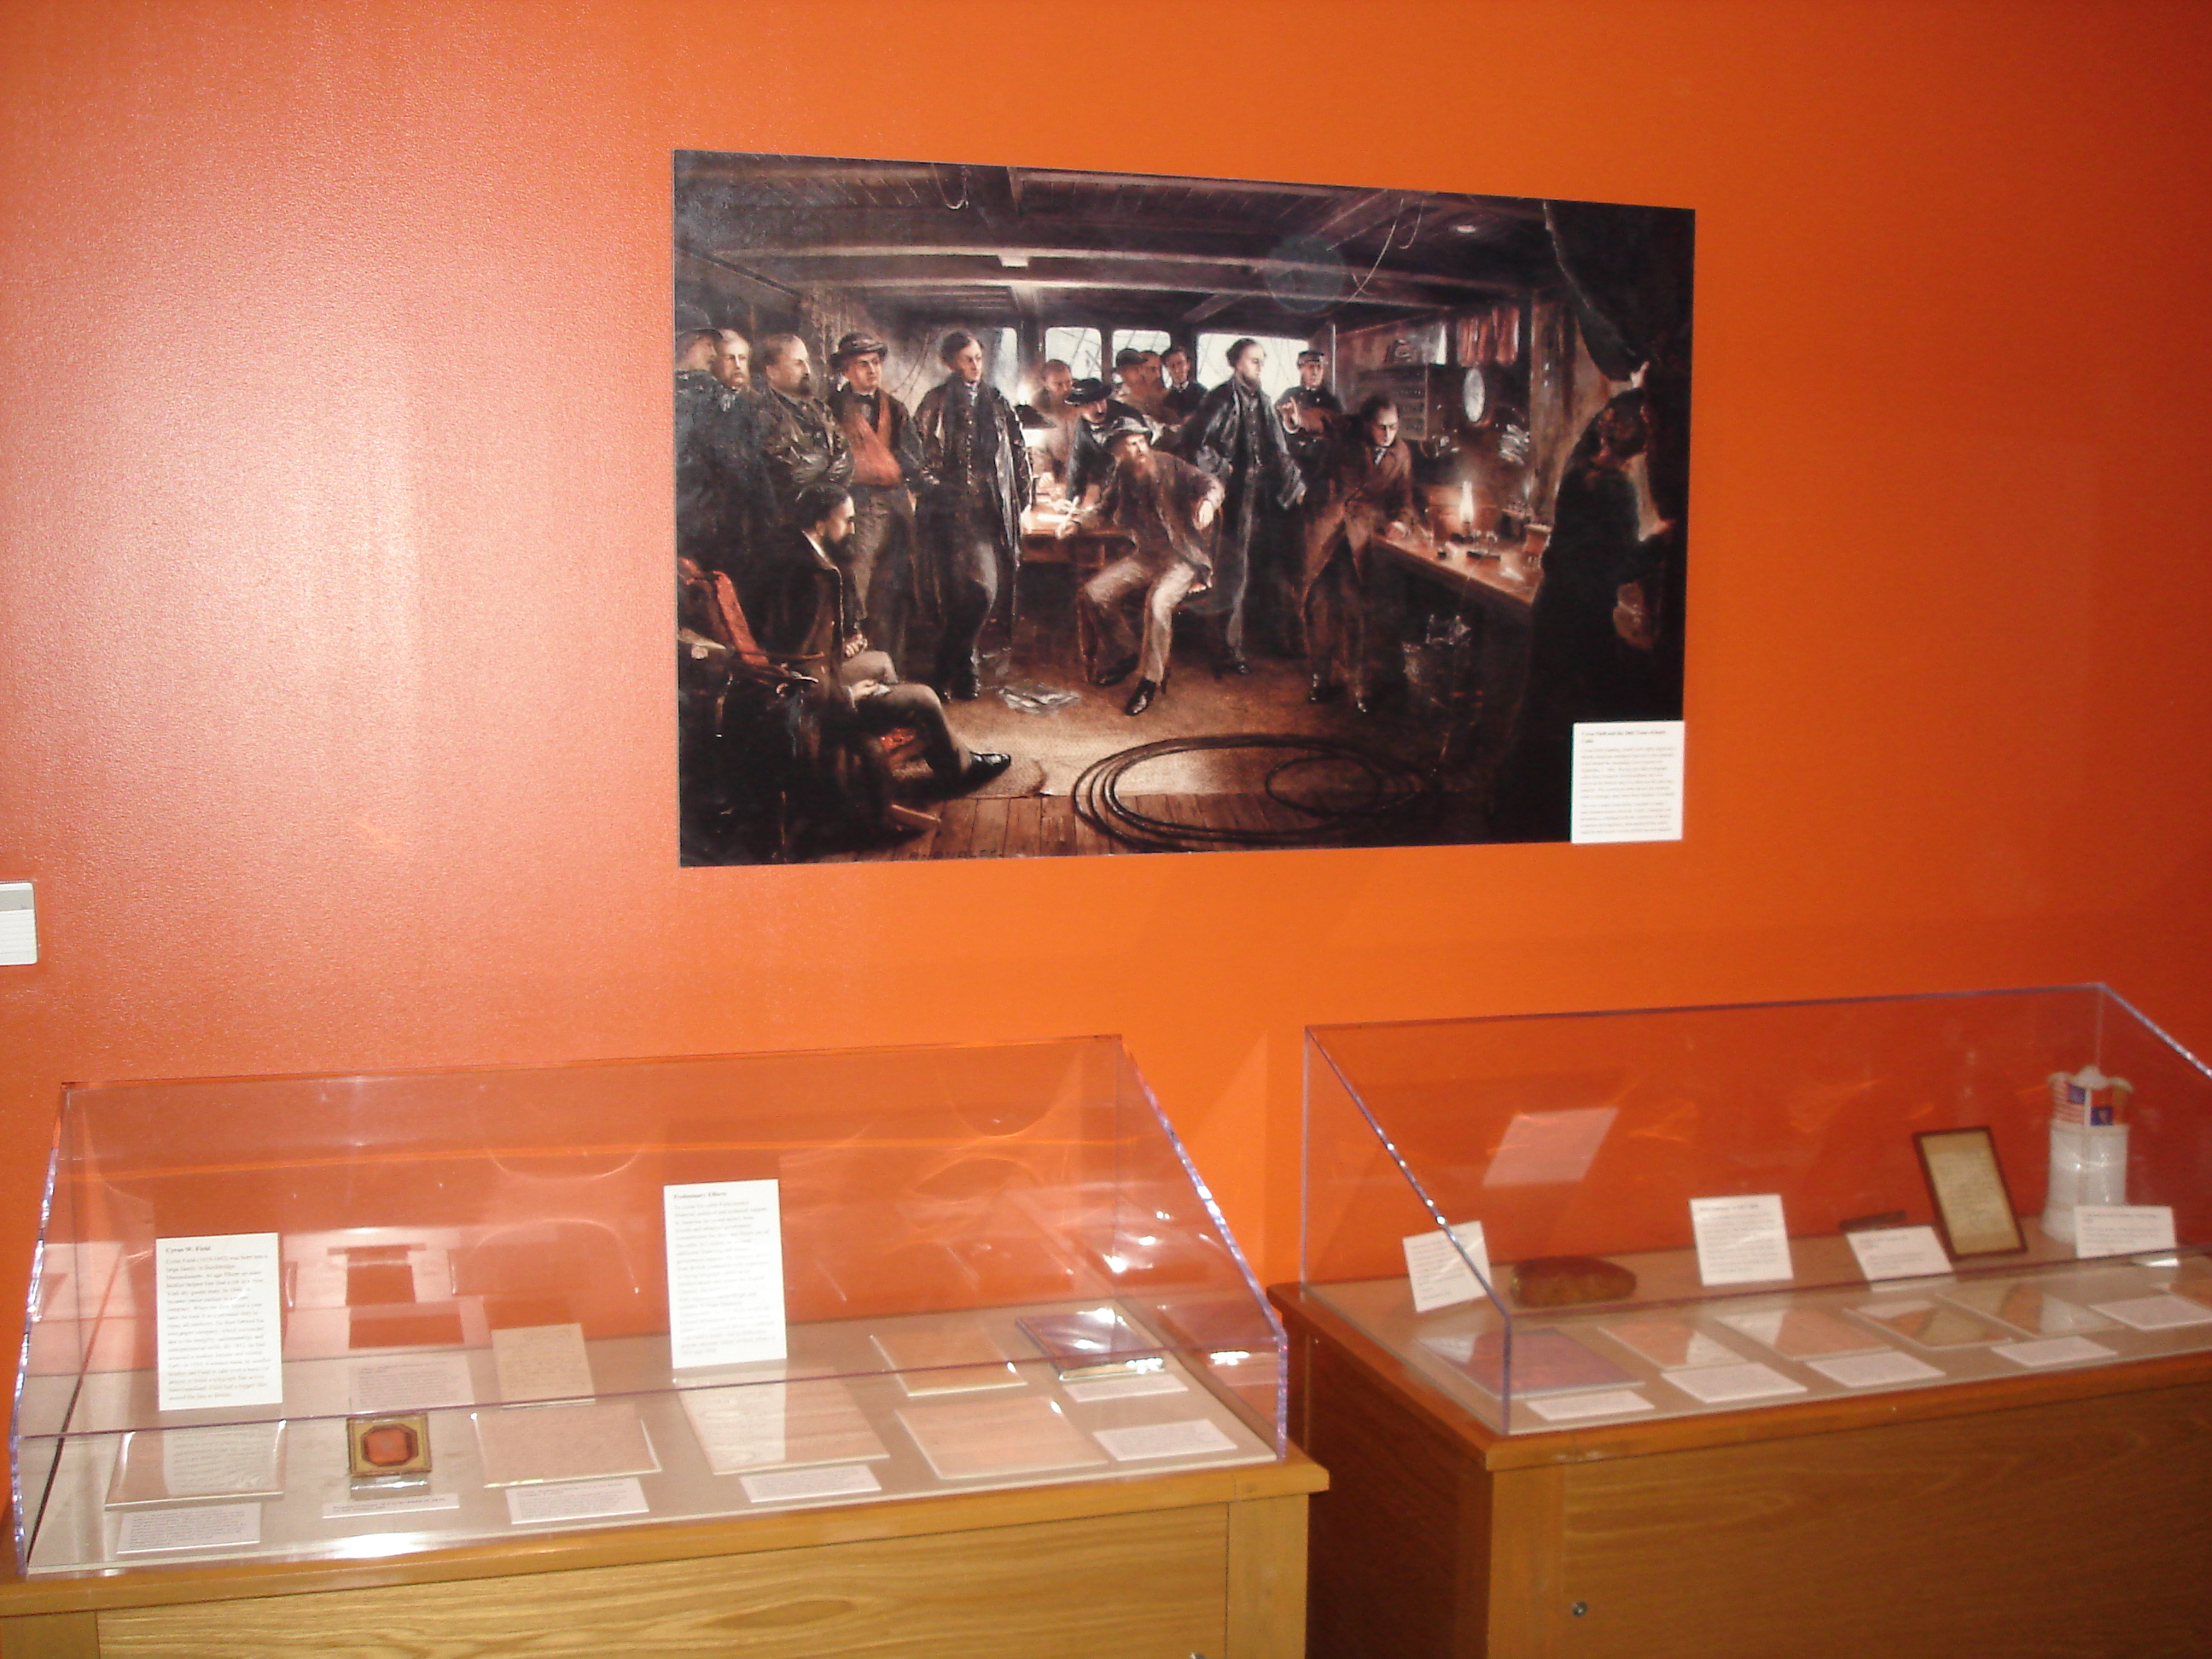 Two display cases sit next to an orange wall underneath a painting of a group of men from what appears to be the 1800s. In the display cases are papers and documents with note cards containing information about them.